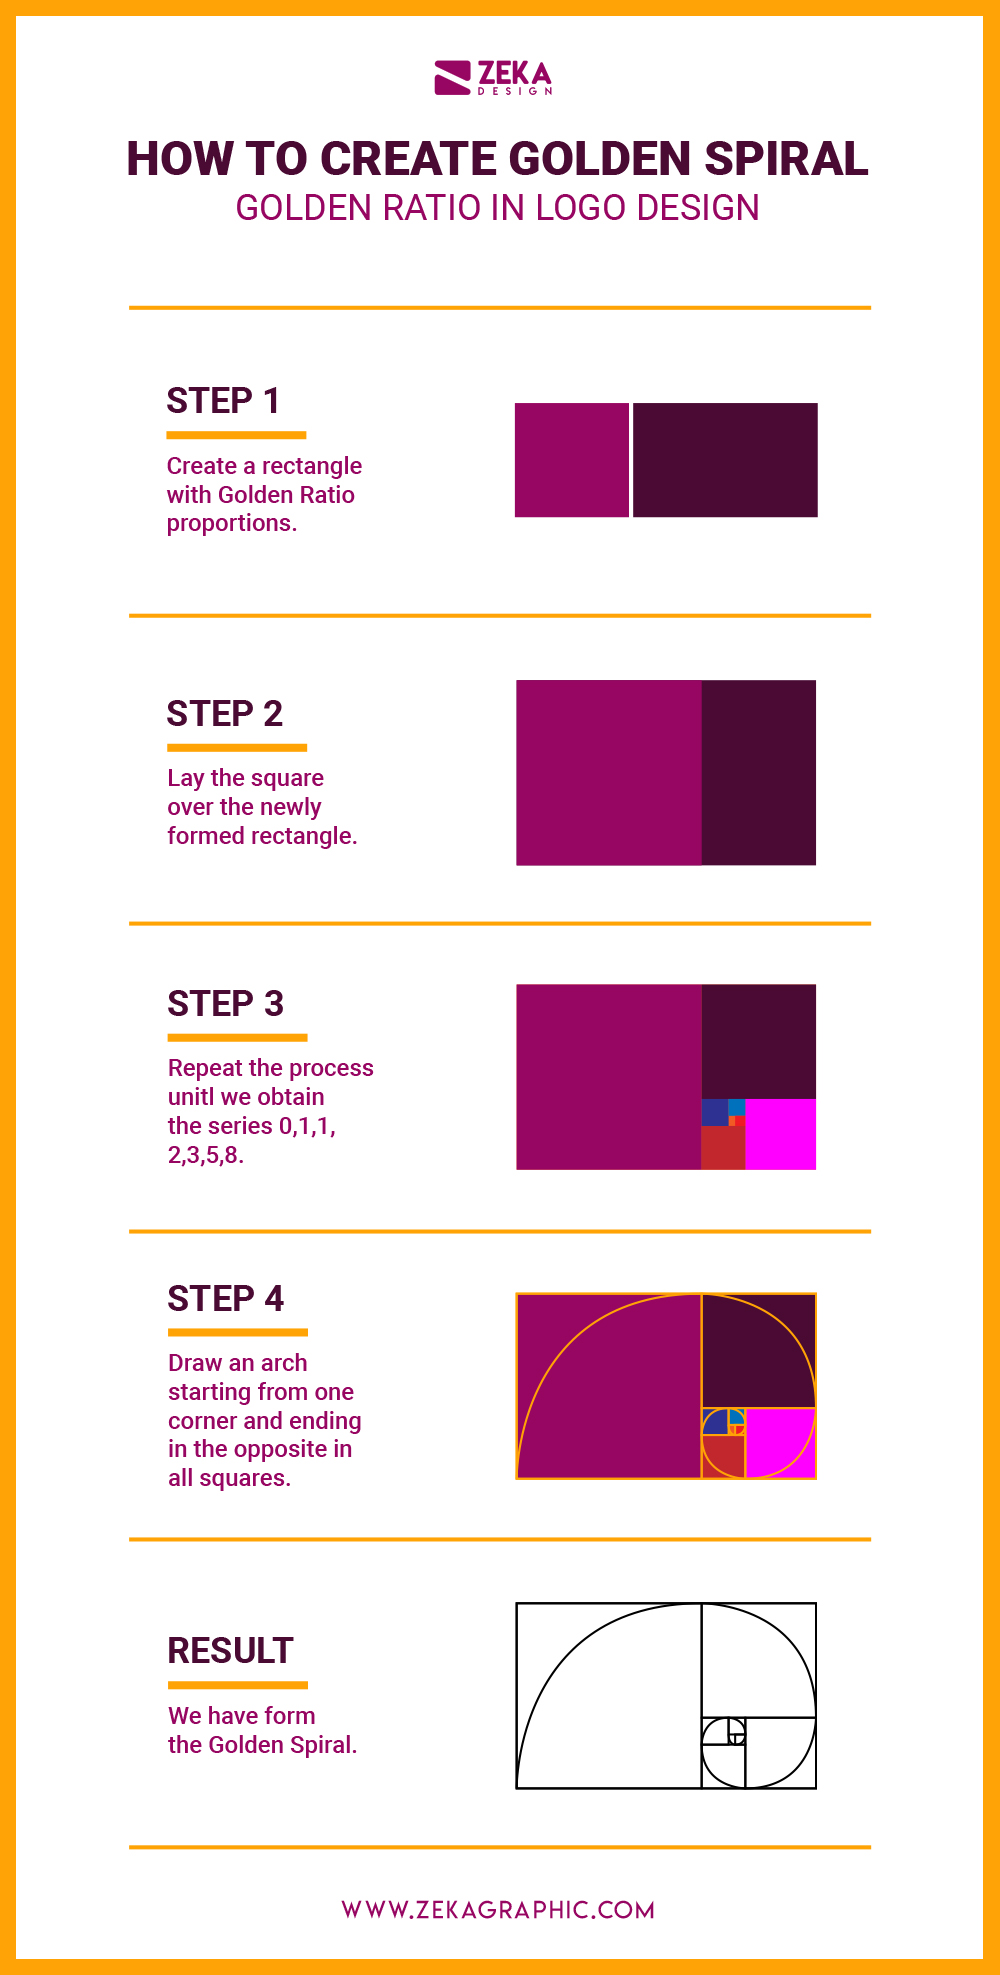 How To Create a Golden Spiral Infographic Golden Ratio Logo